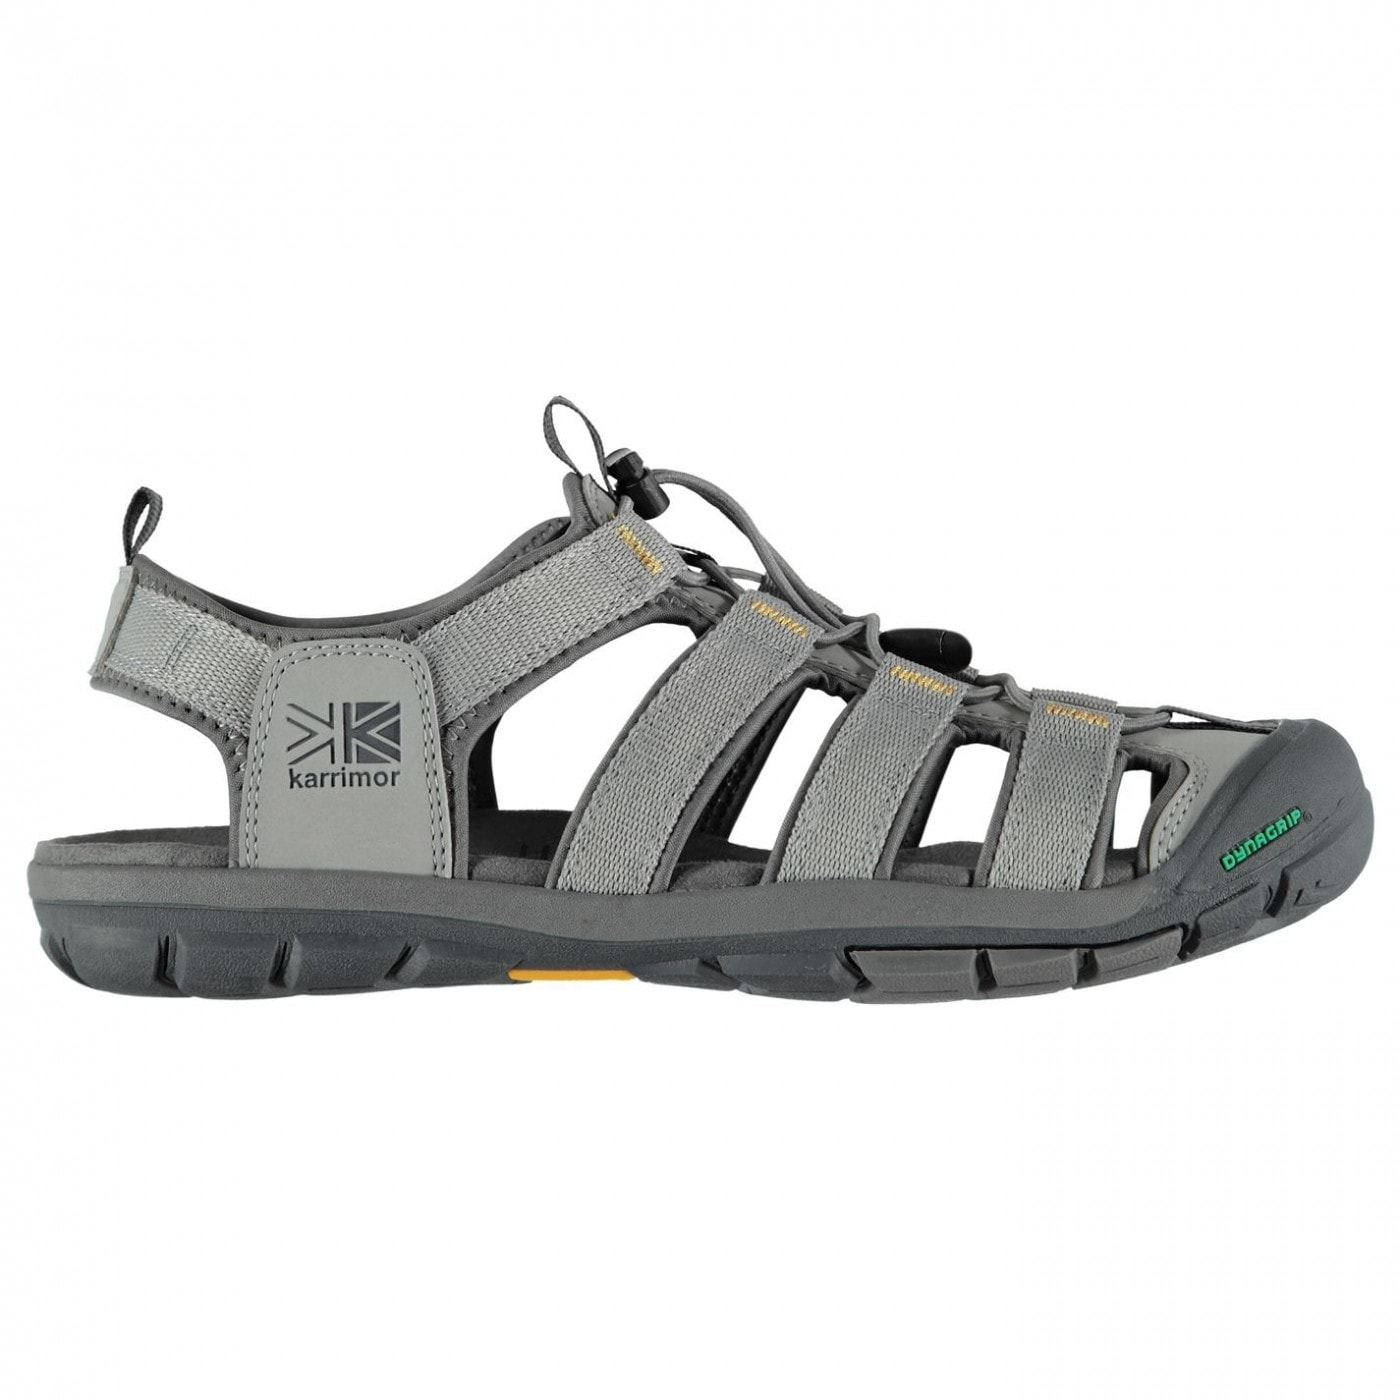 Men's sandals Karrimor Ithaca